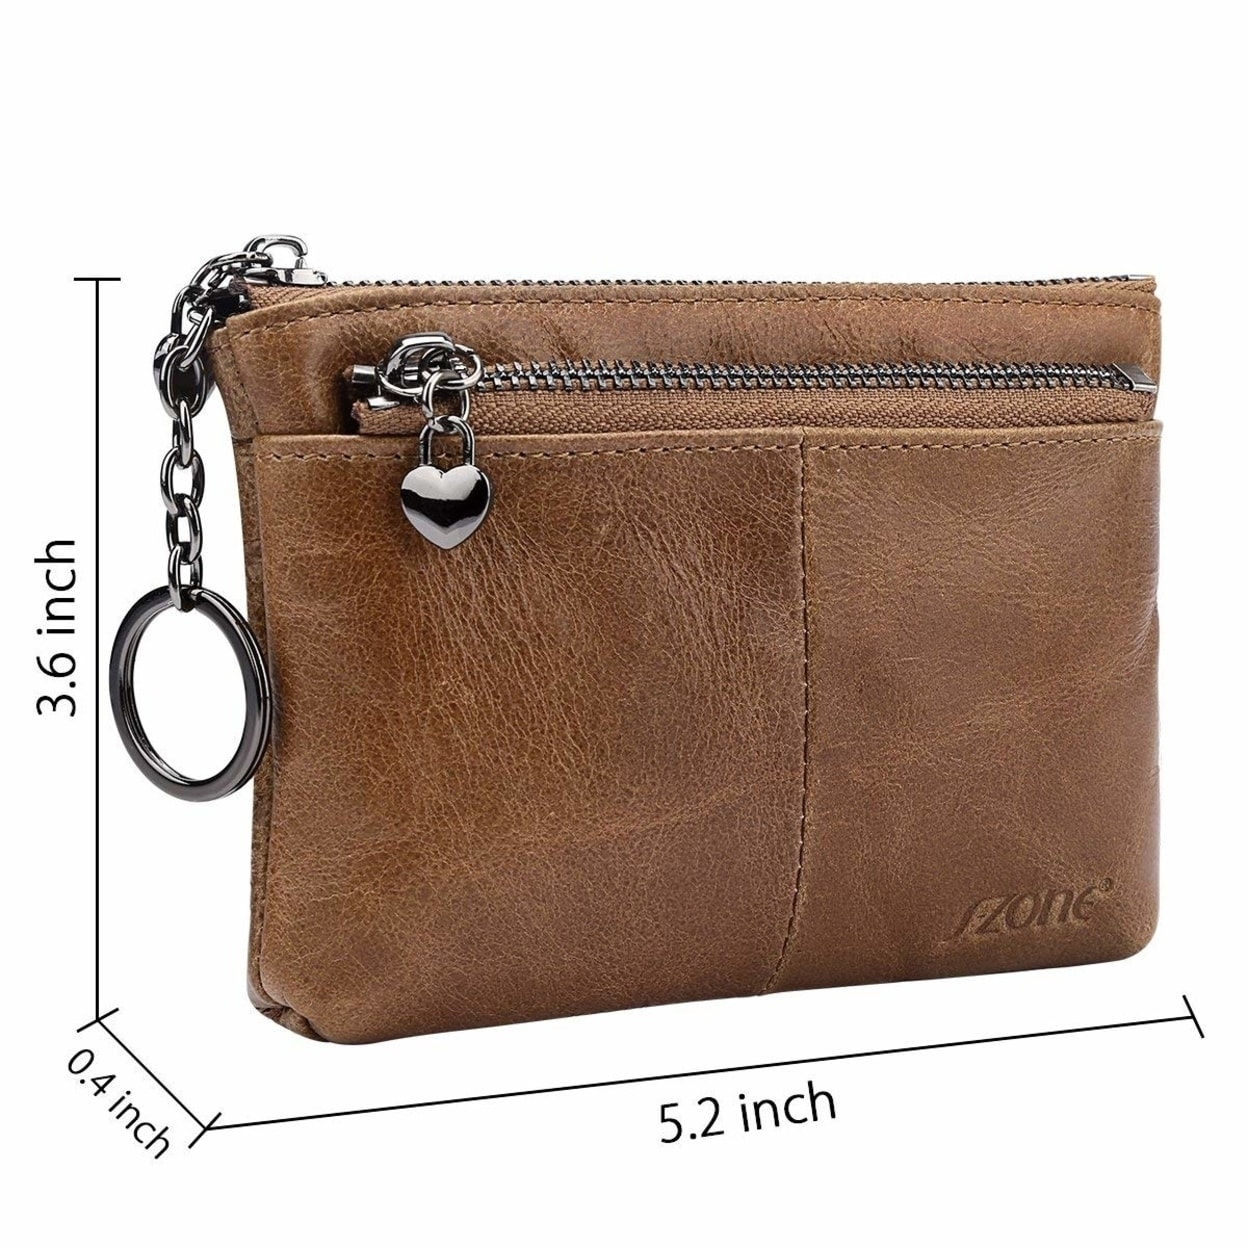 55084c2985 Women S Genuine Leather Triple Zipper Small Wallet Change Coin Purse Card  Holder With Key Ring